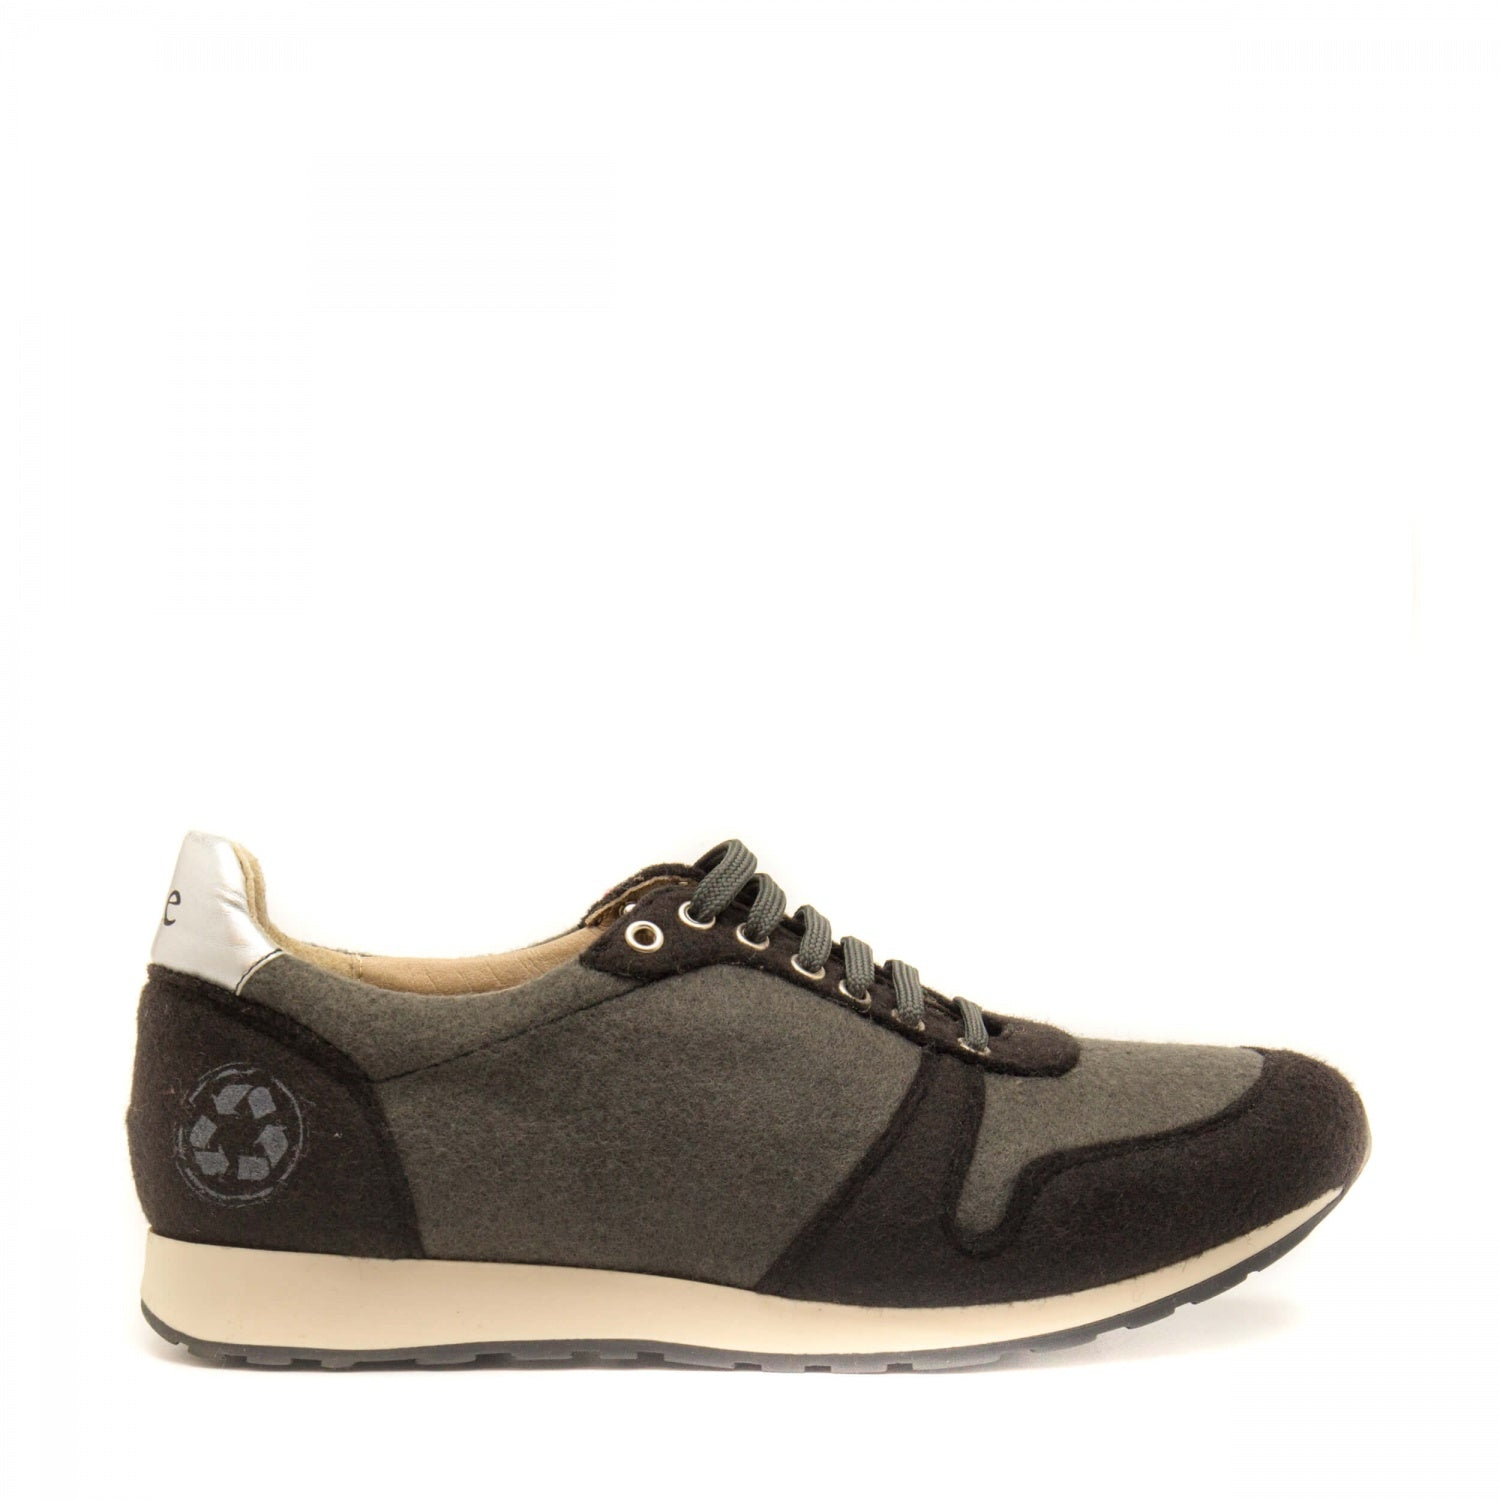 Re-Bottle Black - Unisex Sneakers Made With PET